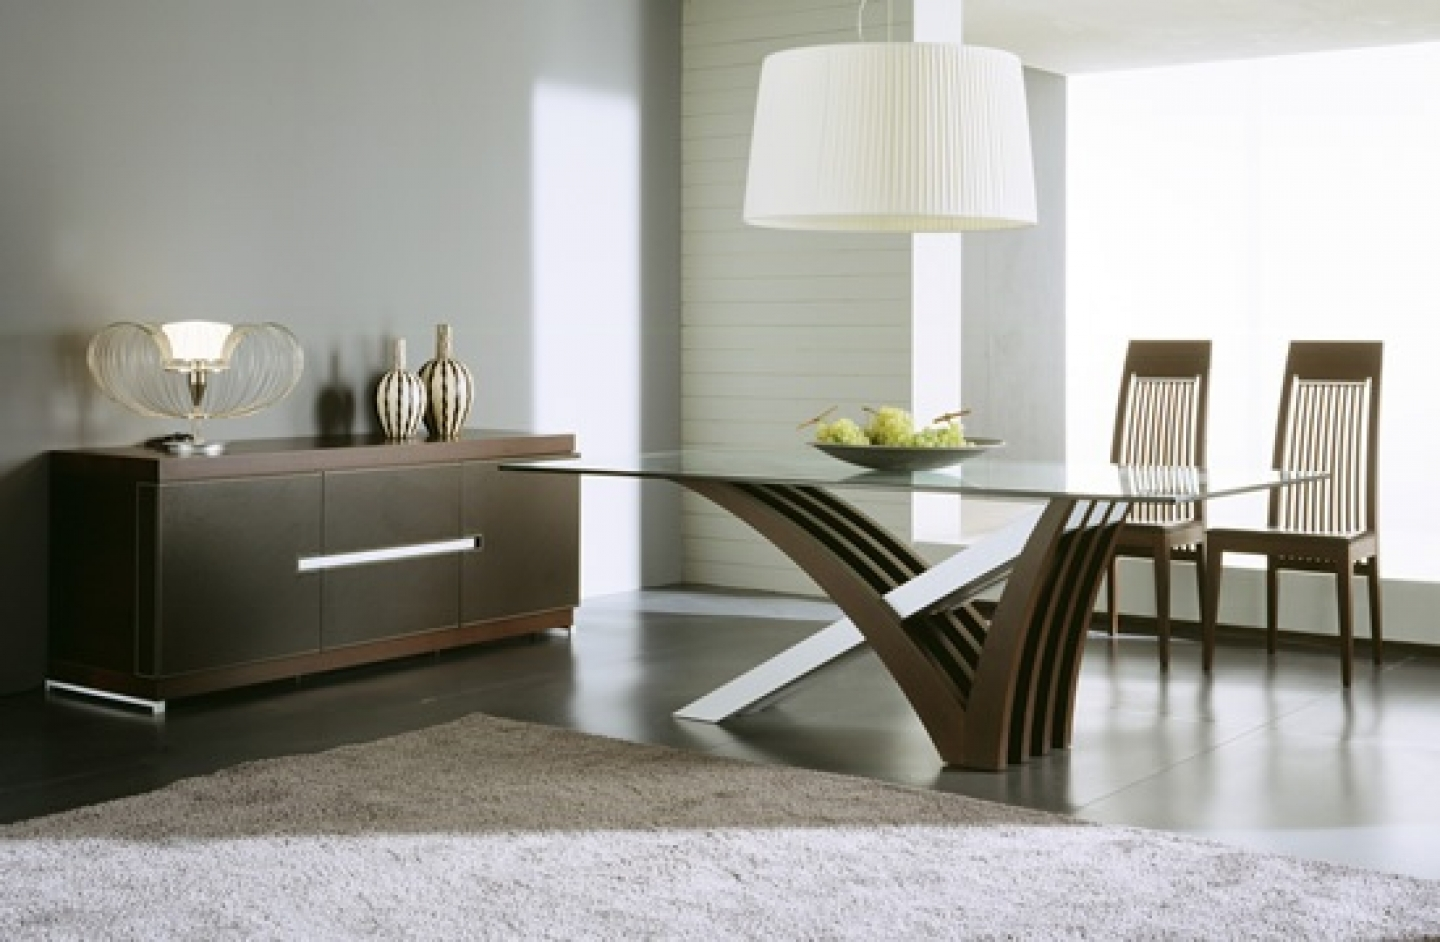 Teak patio furniture at home decor dream house for Contemporary dining table decor